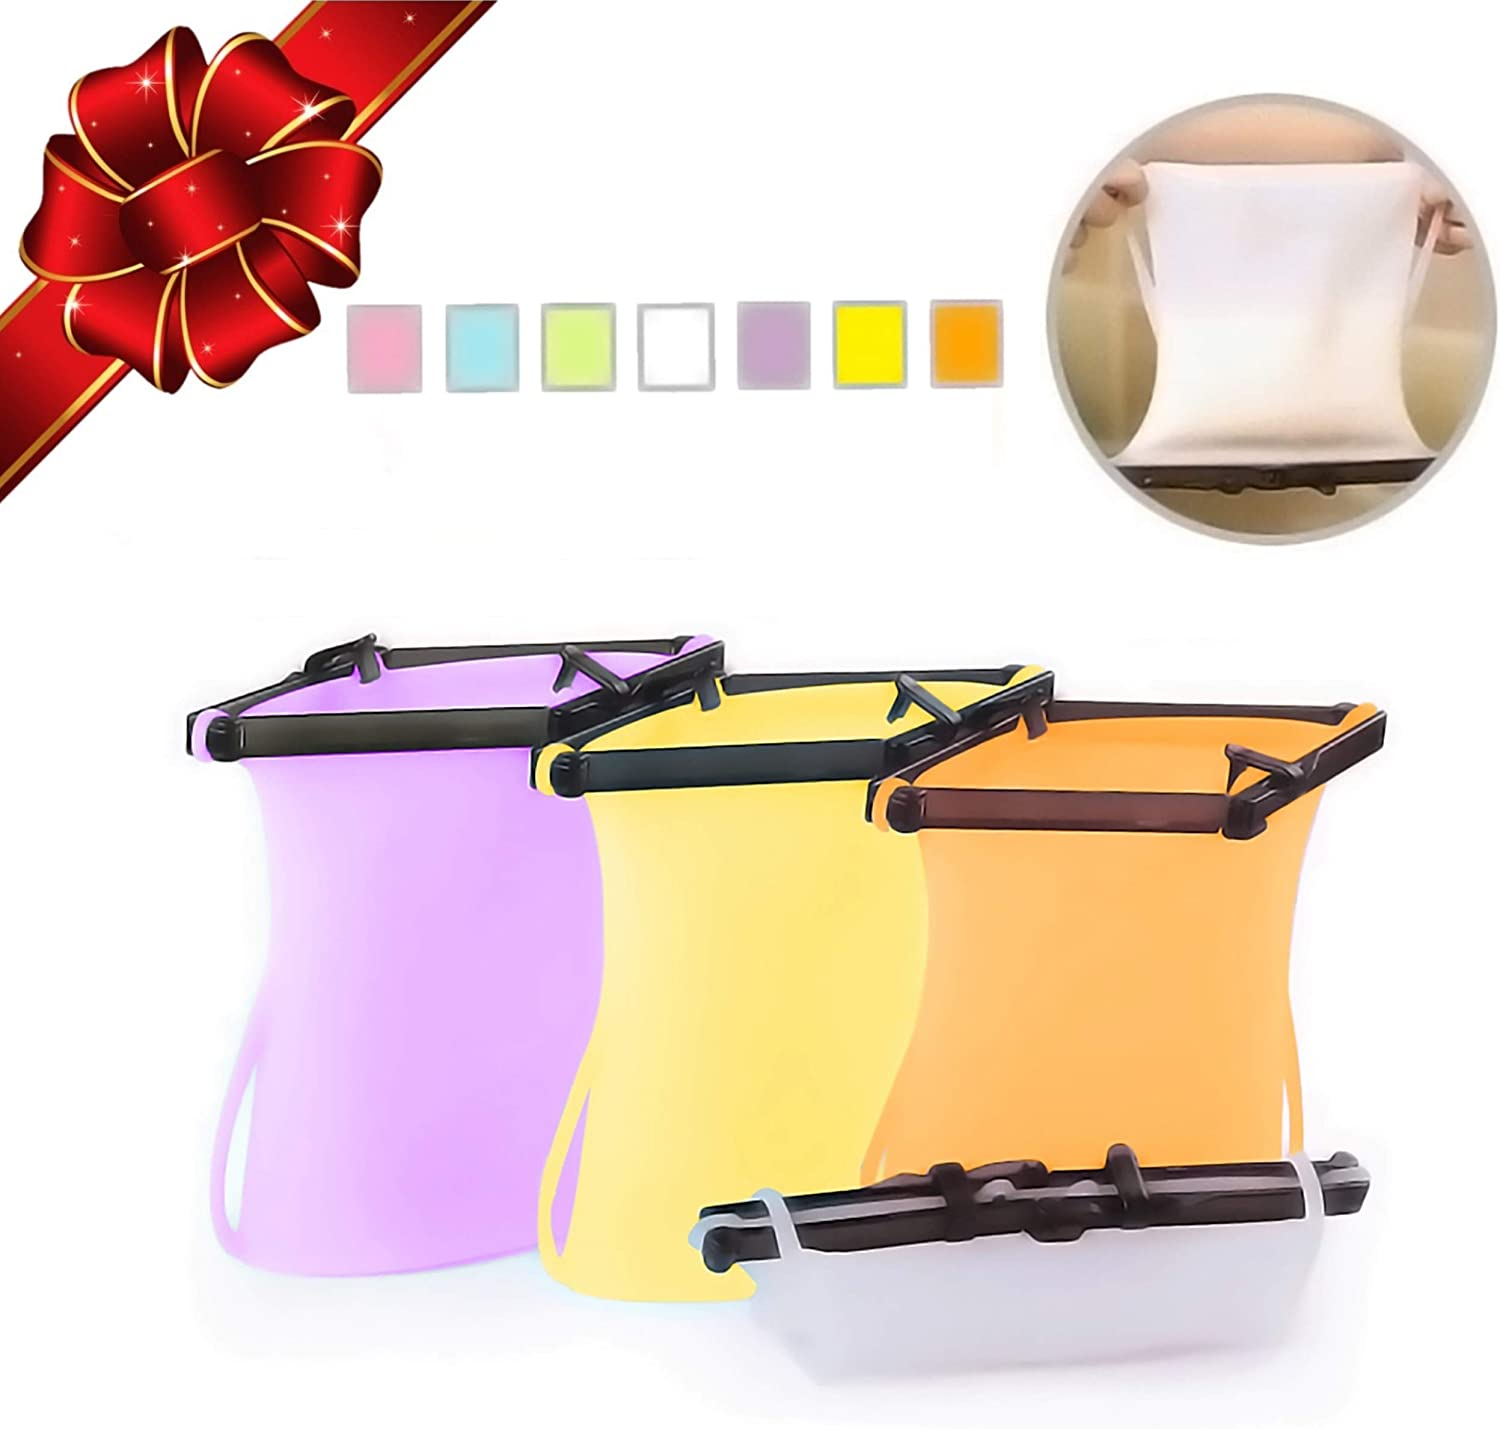 Reusable Silicone Food Bag (4) Stand-Up Flat Bottom Freezer Food Storage Bag Dishwasher Safe Best Ziplock Bags Alternative For Meats, Marinates (33 Oz, Purple + Orange + Yellow + Clear)